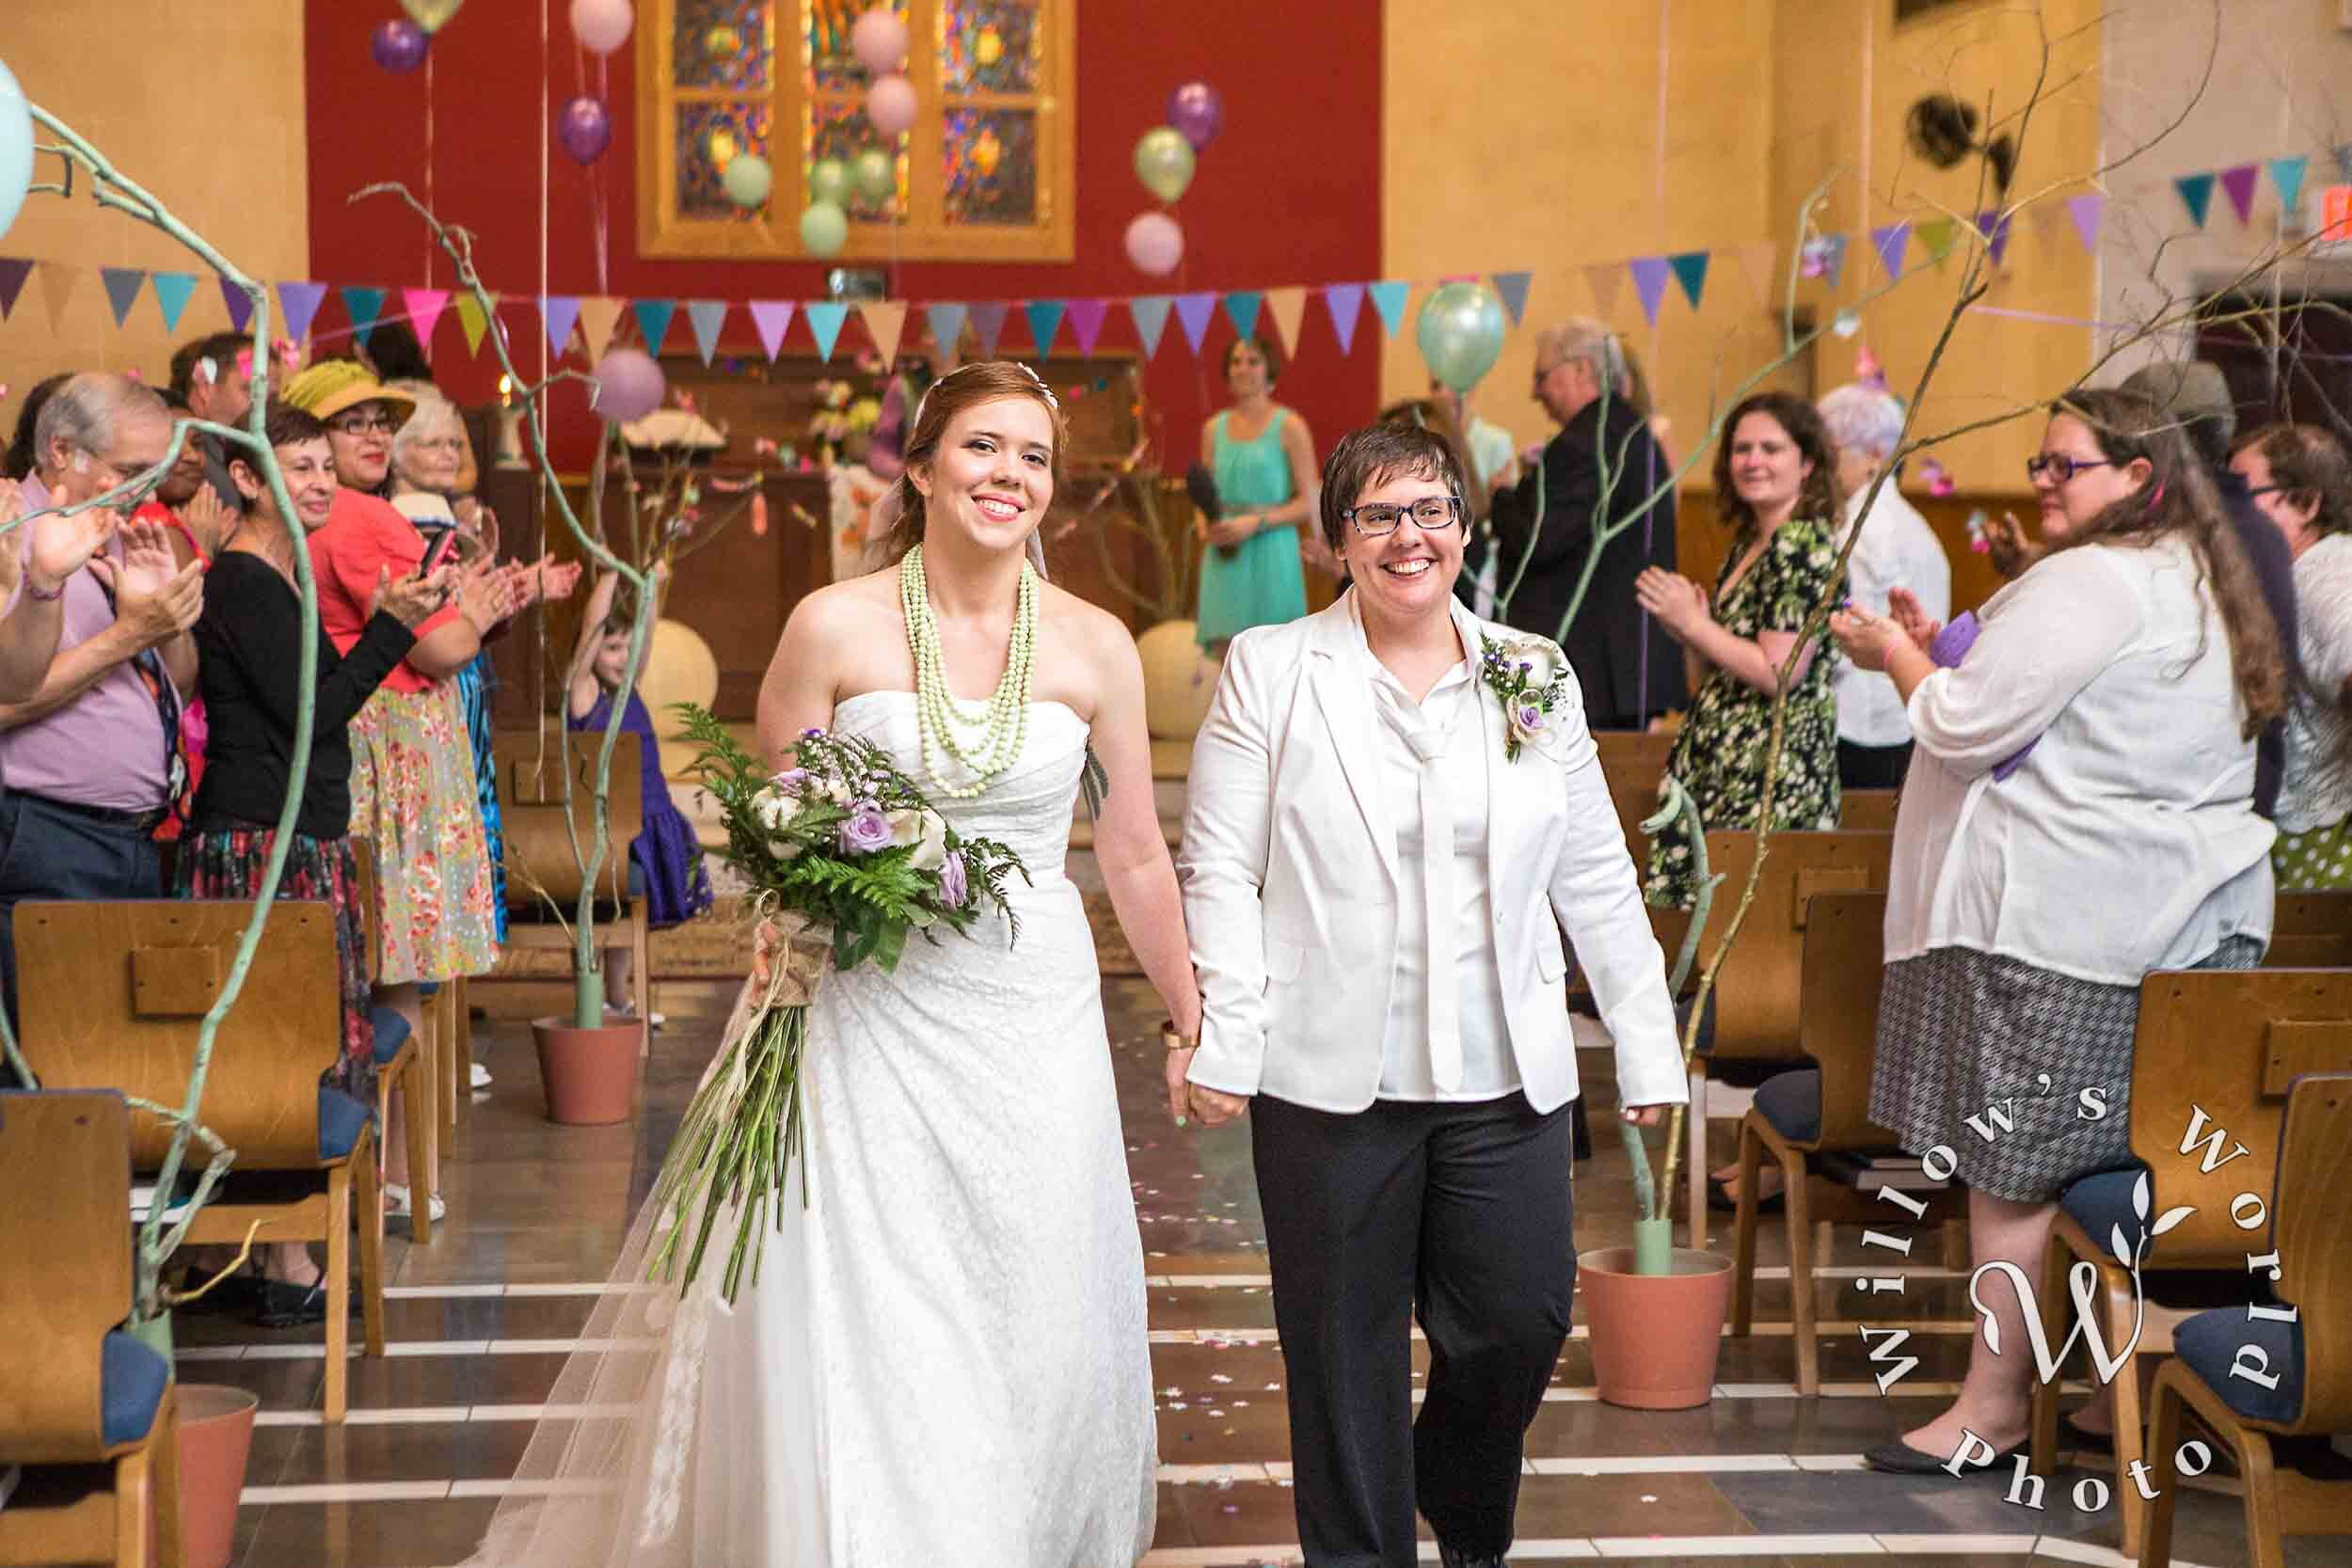 18-First-Universal-Unitarian-Church-New-Orleans-LGBTQ-Wedding-Ceremony-Willows-World-Photo-2.jpg